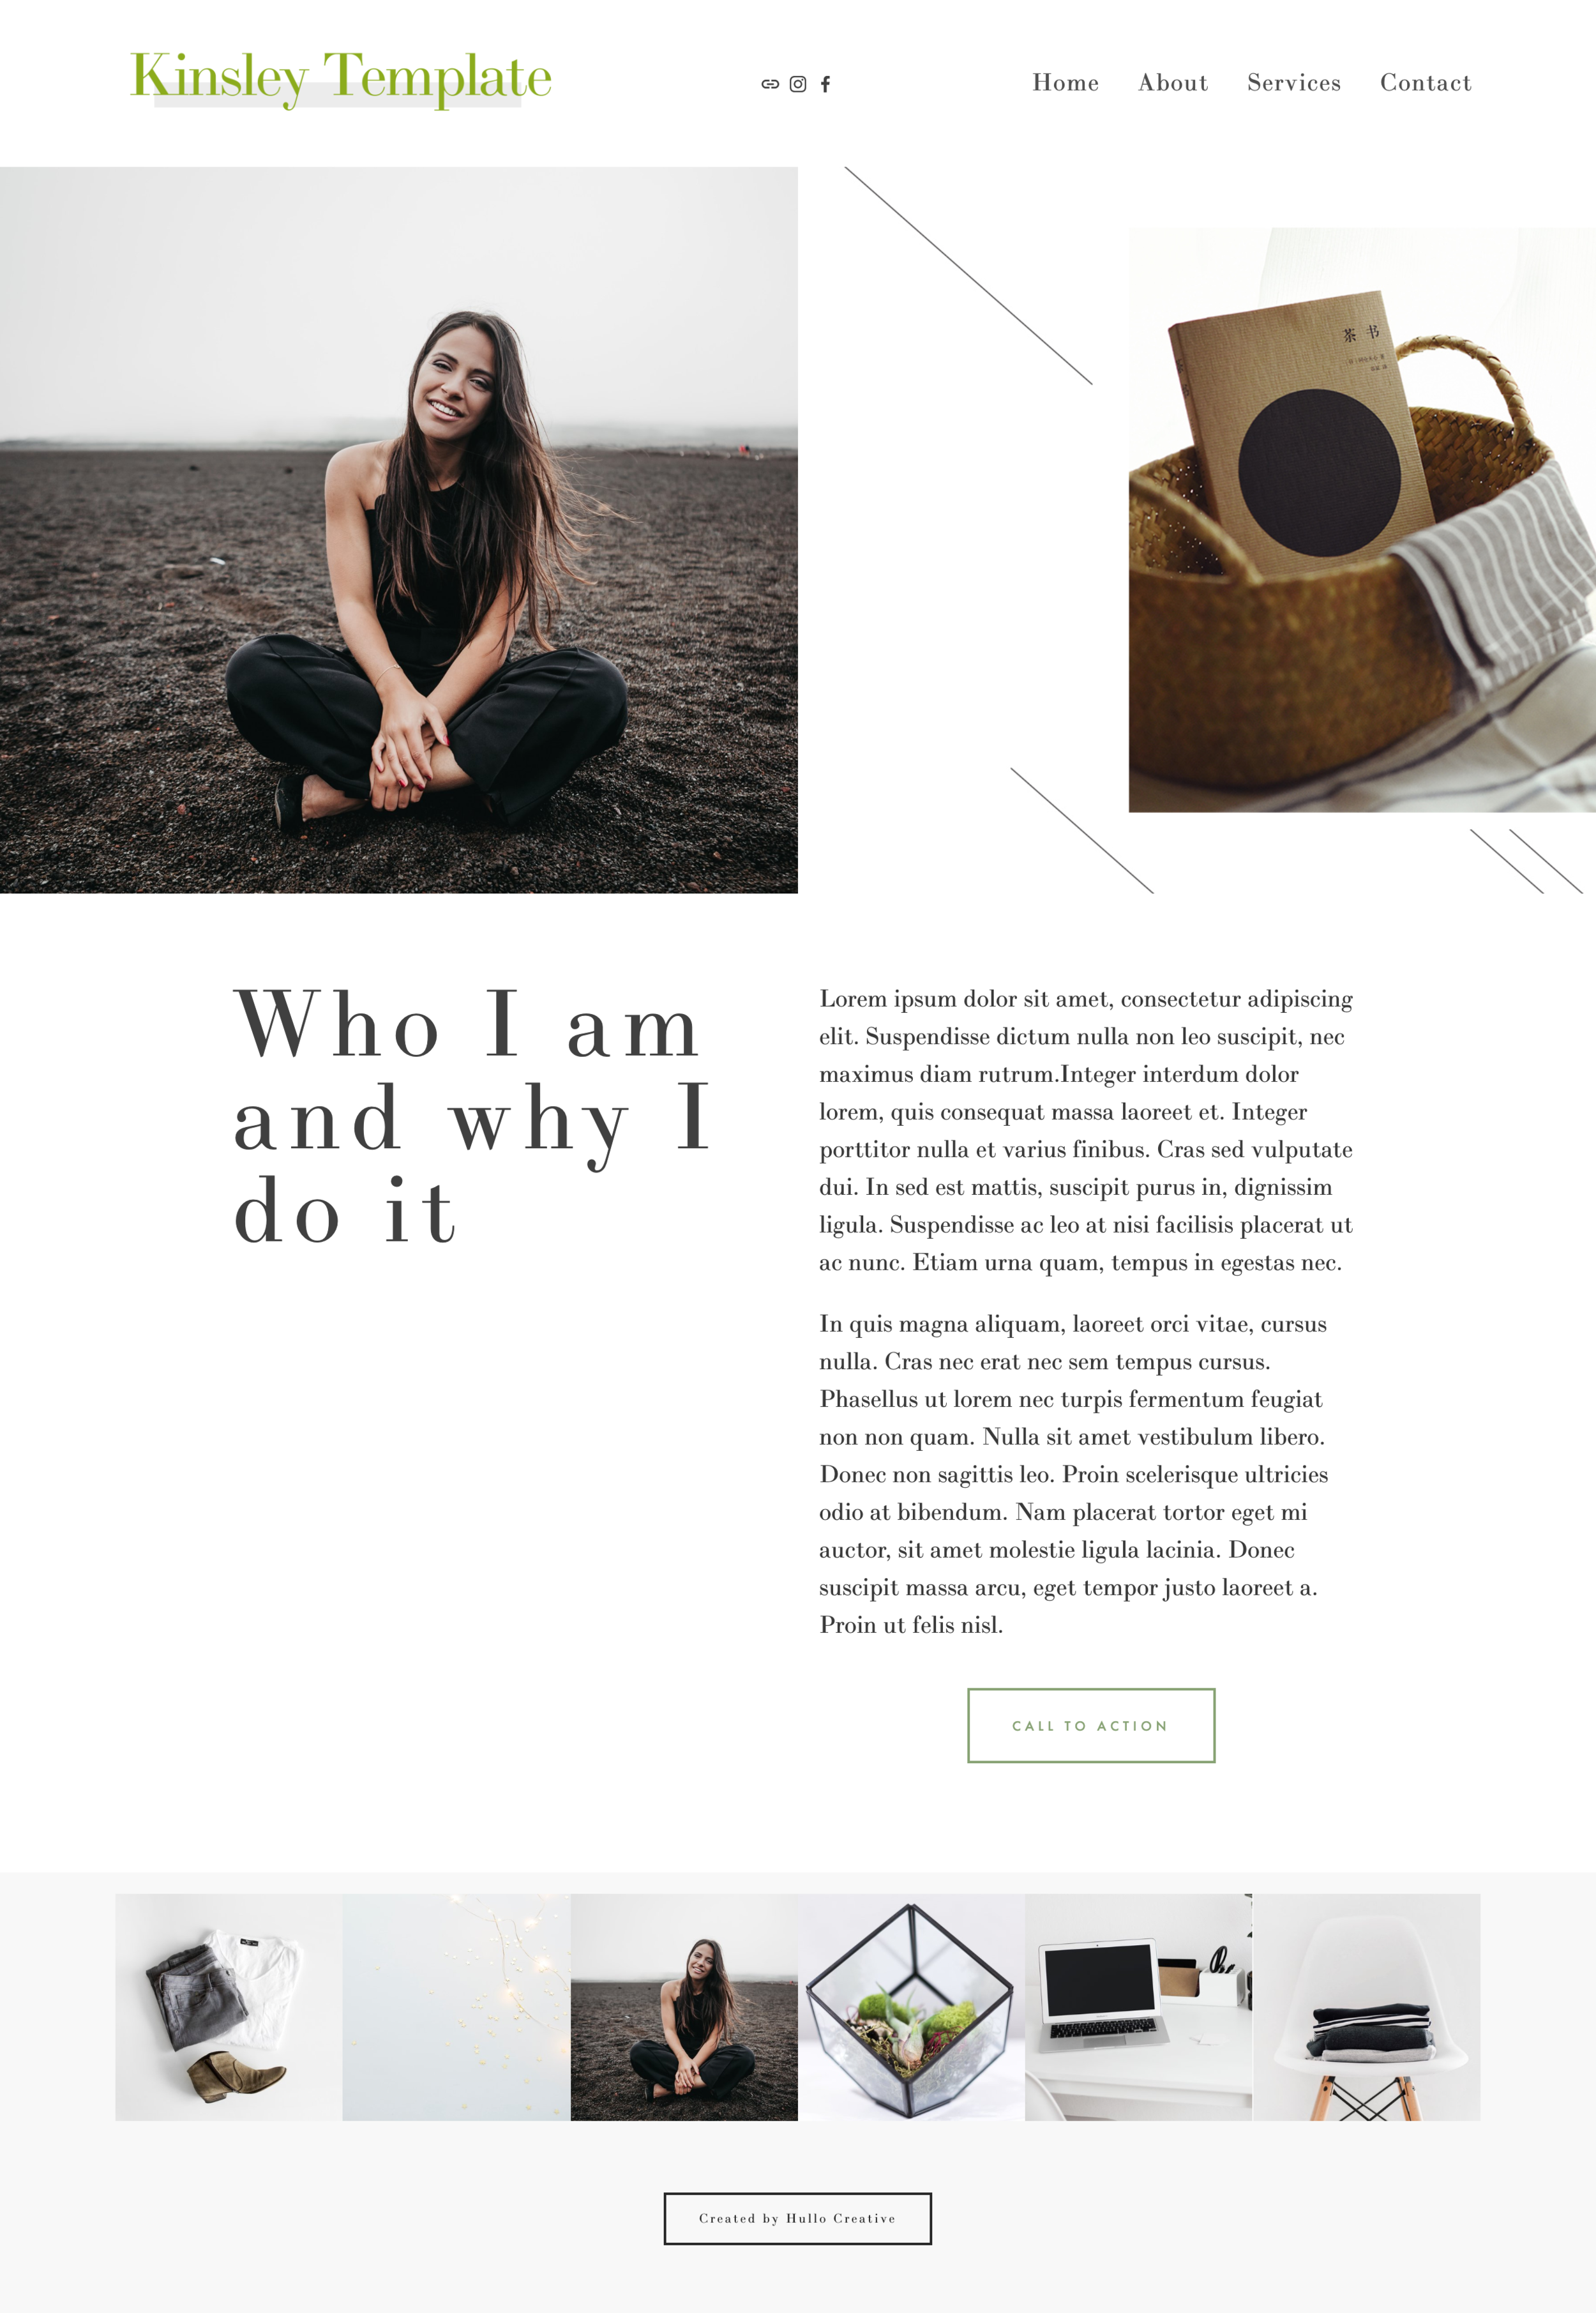 screencapture-kinsley-template-squarespace-about-2019-10-04-10_59_46.png